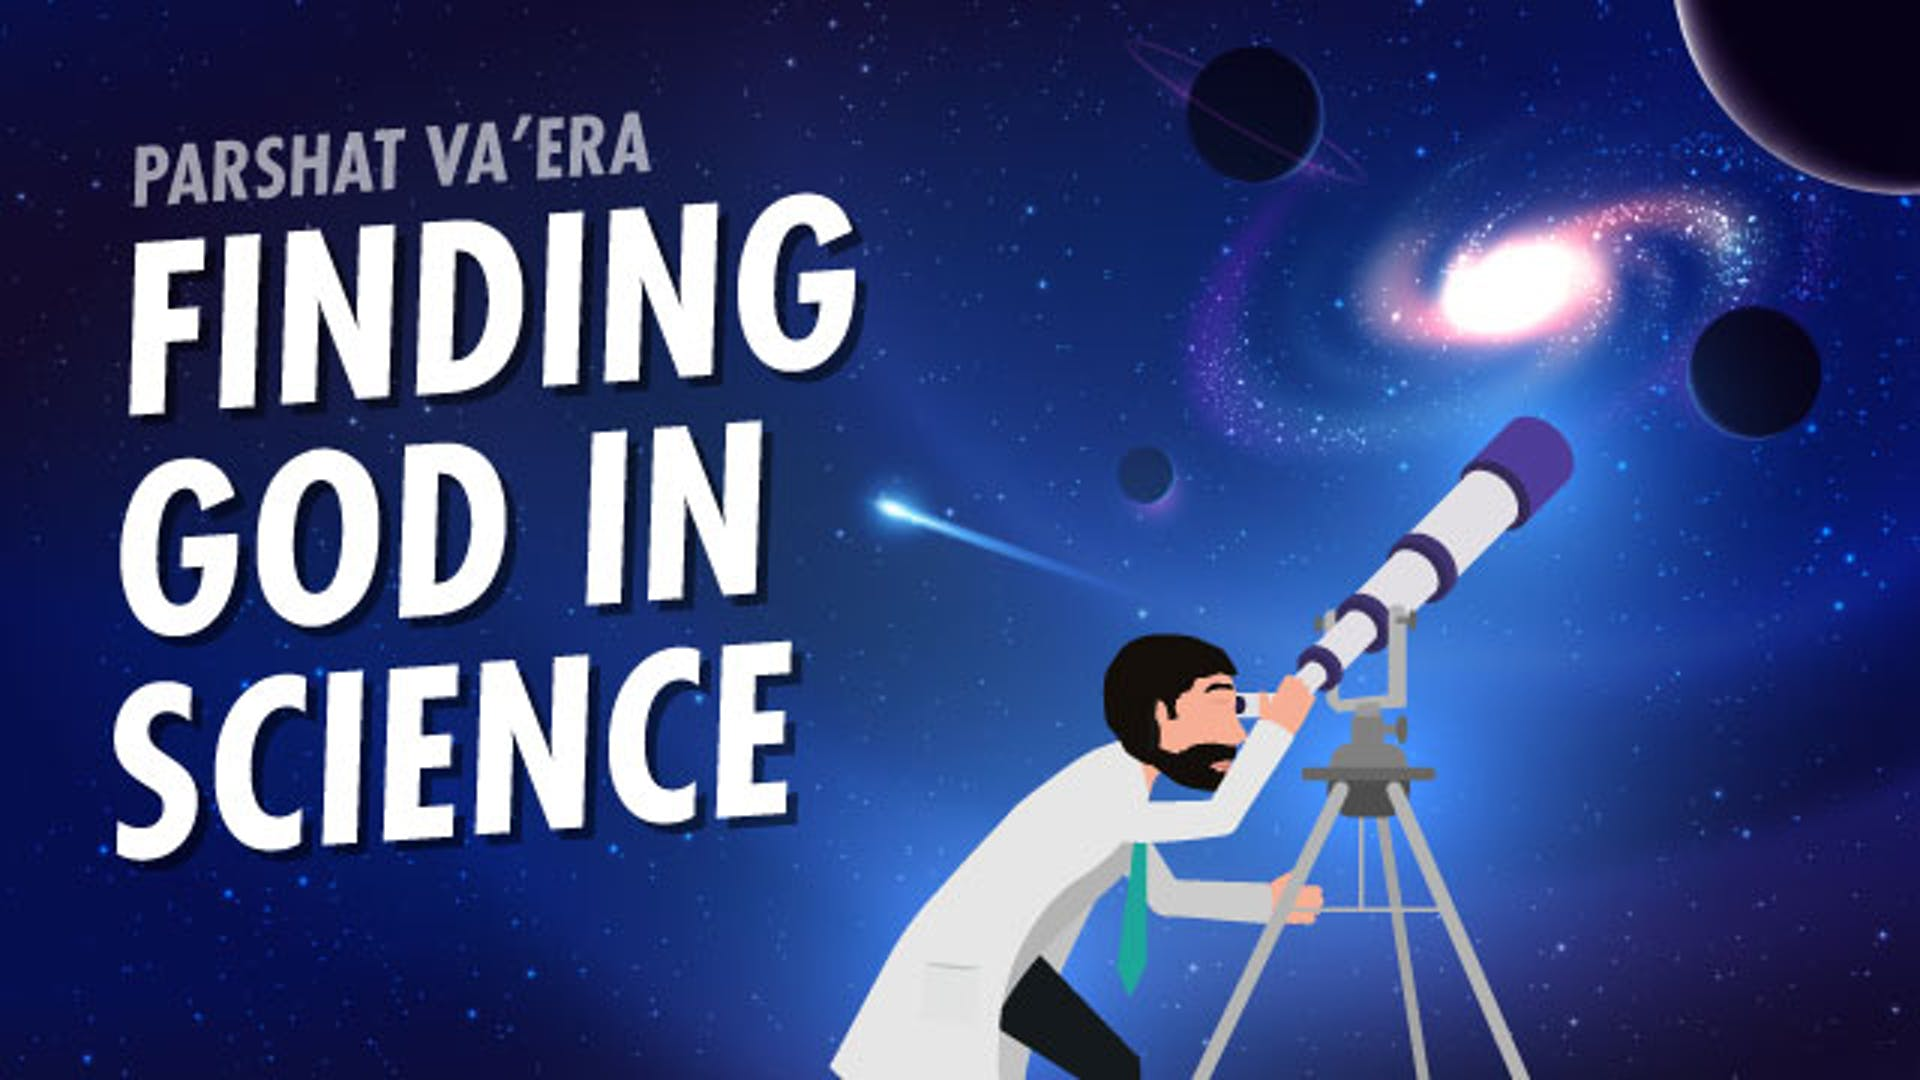 Finding God and science coexist